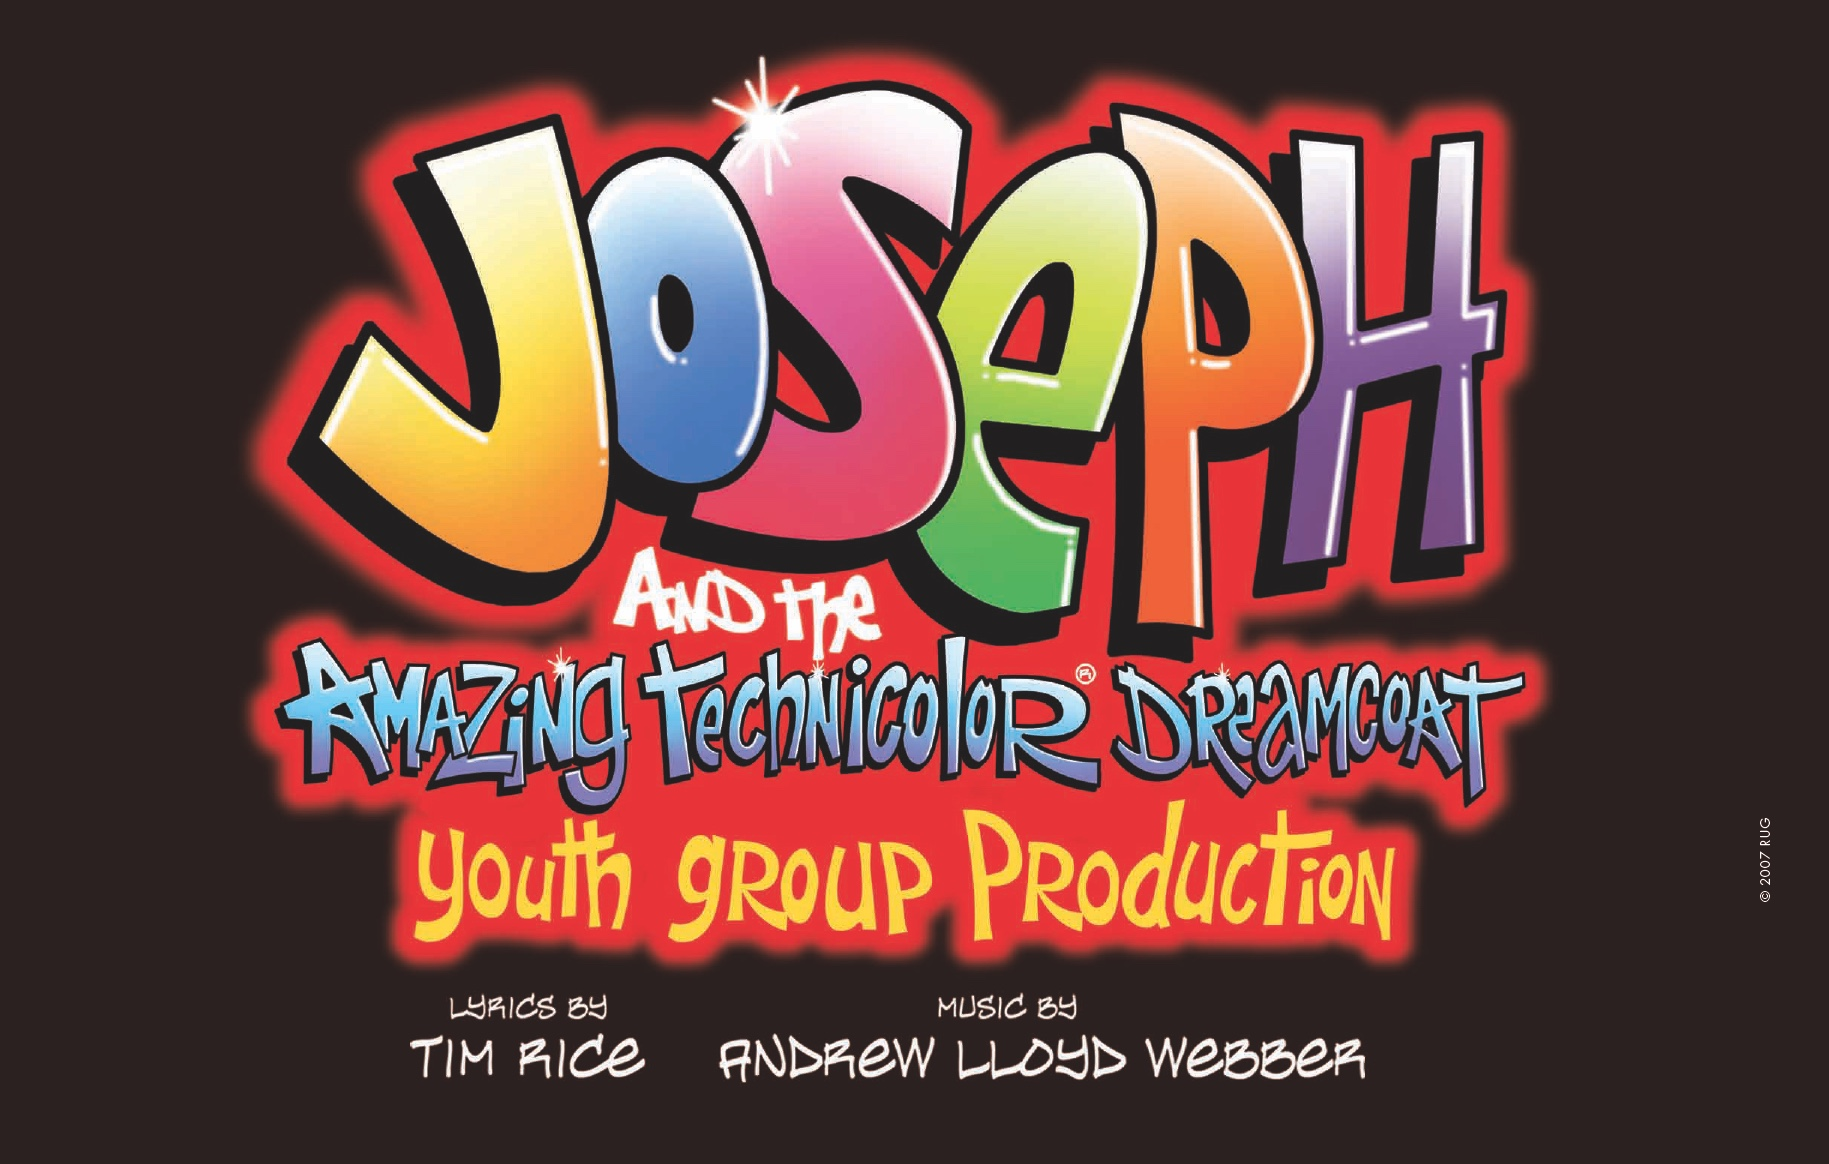 Joseph & The Amazing Technicolor Dreamcoat - A Herne Bay Youth Theatre Production